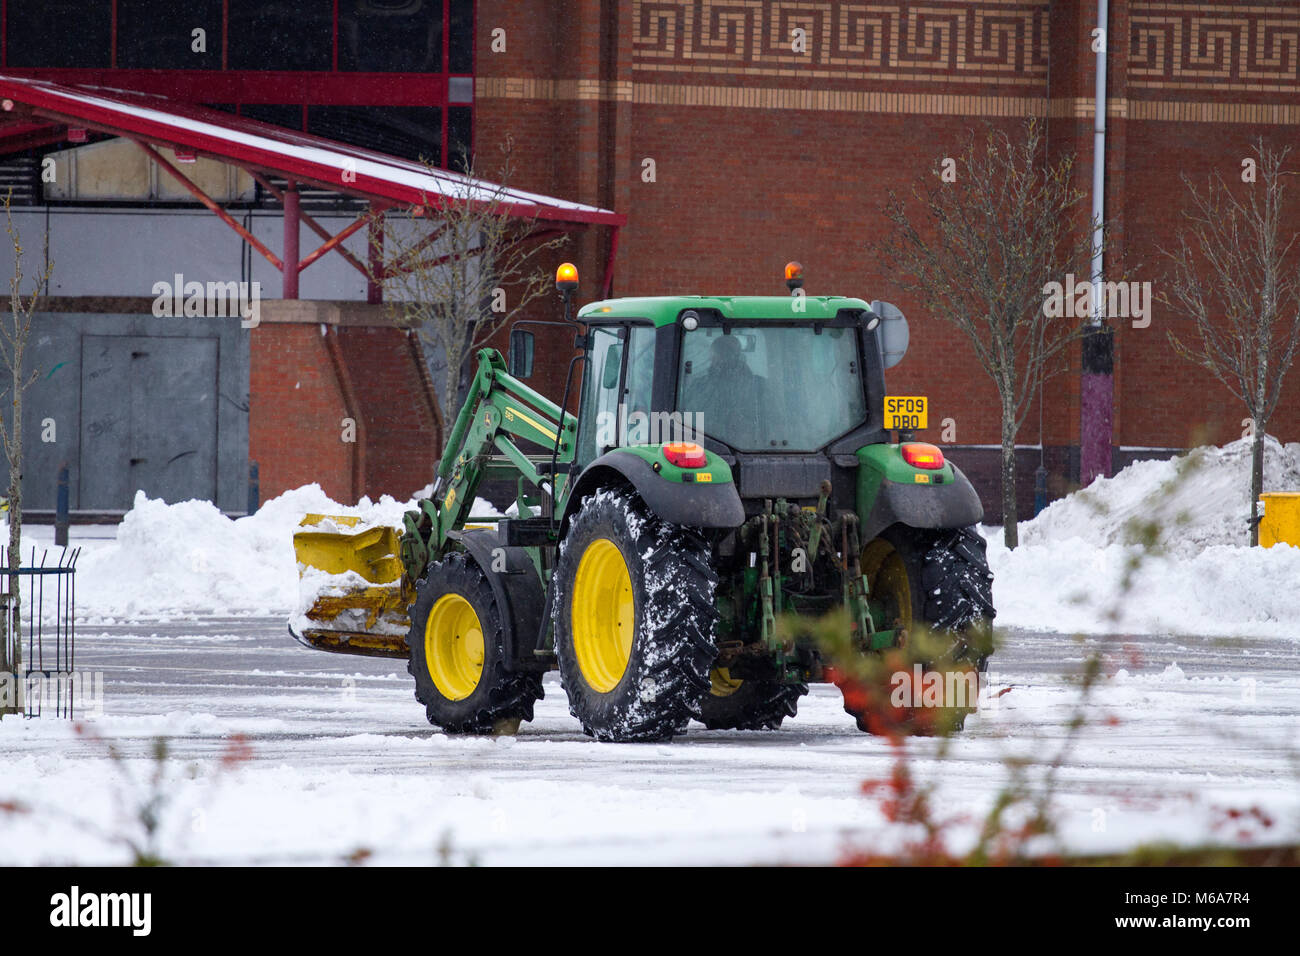 Dundee, Scotland, UK. 2nd March, 2018. UK Weather. The Siberian Beast from the East continues to cause disruption - Stock Image